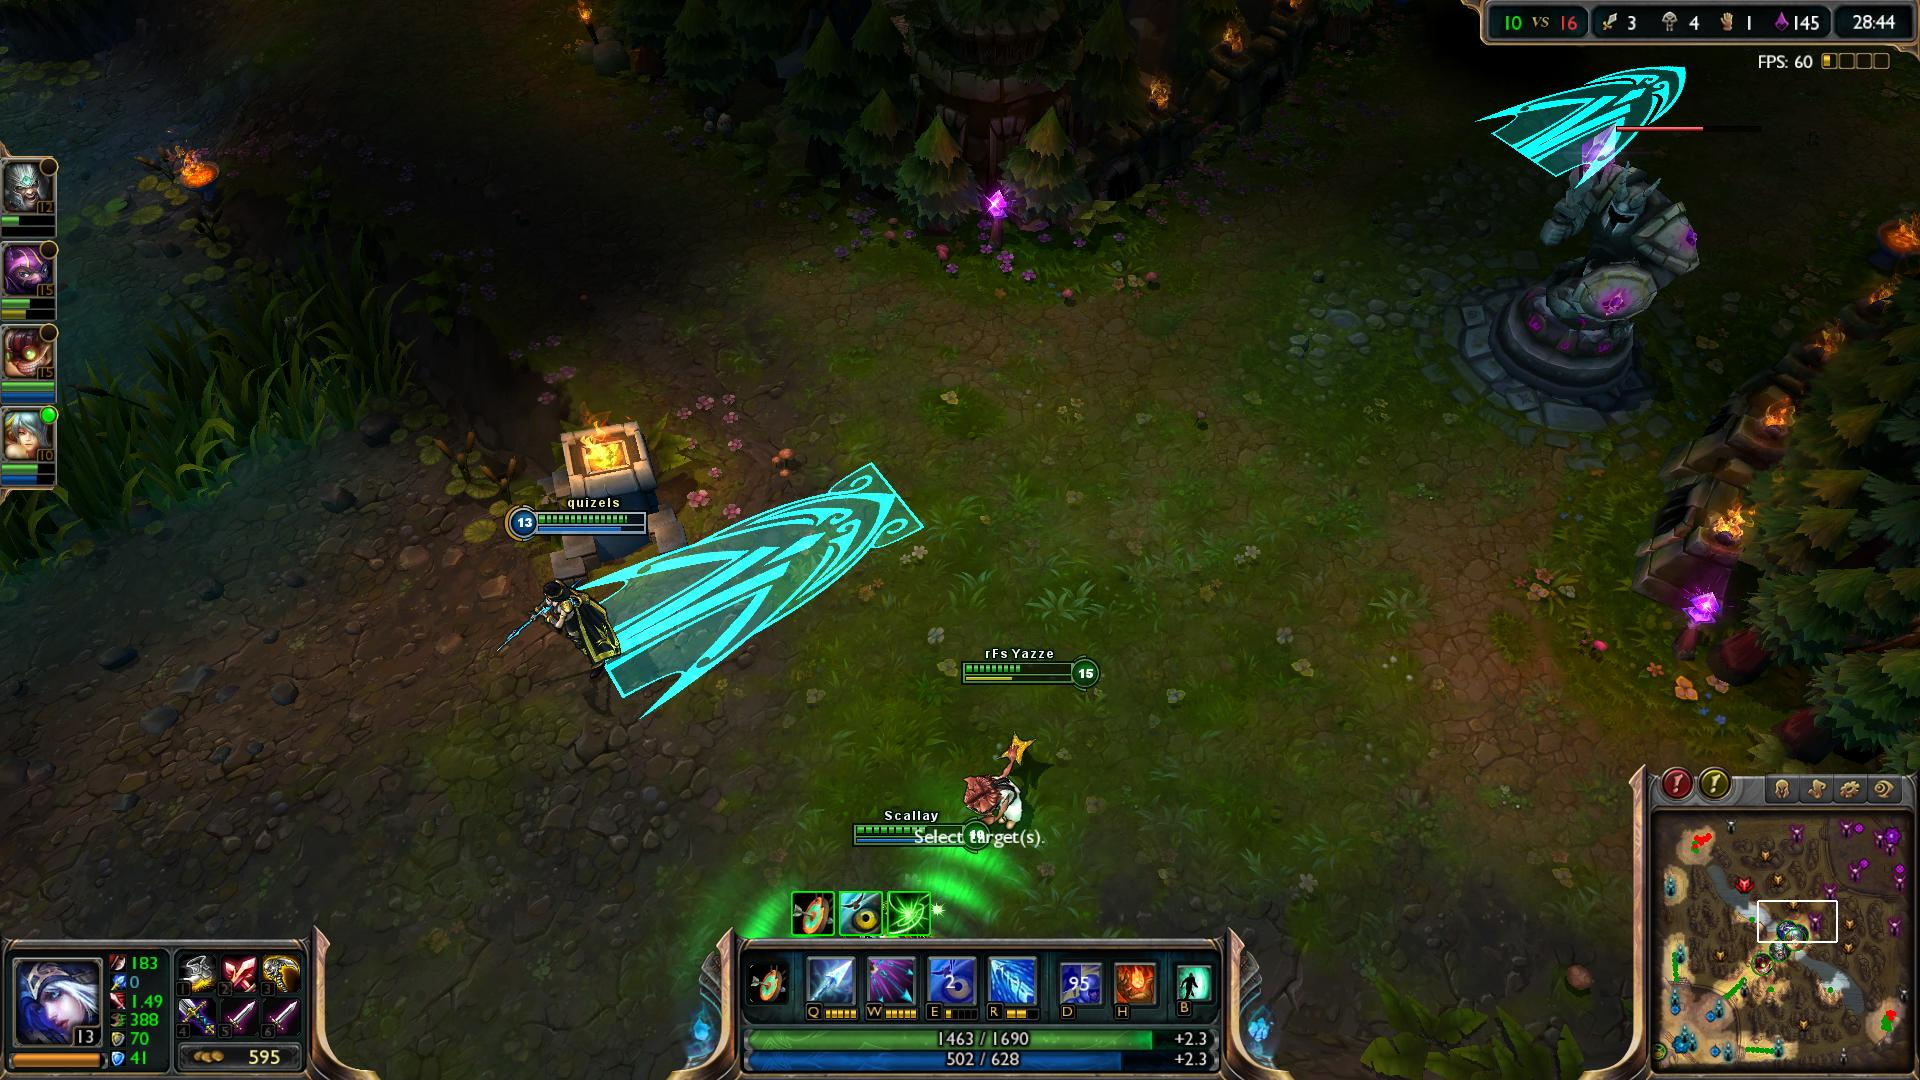 Enchanted Crystal Arrow Ashe lol lol screenshot